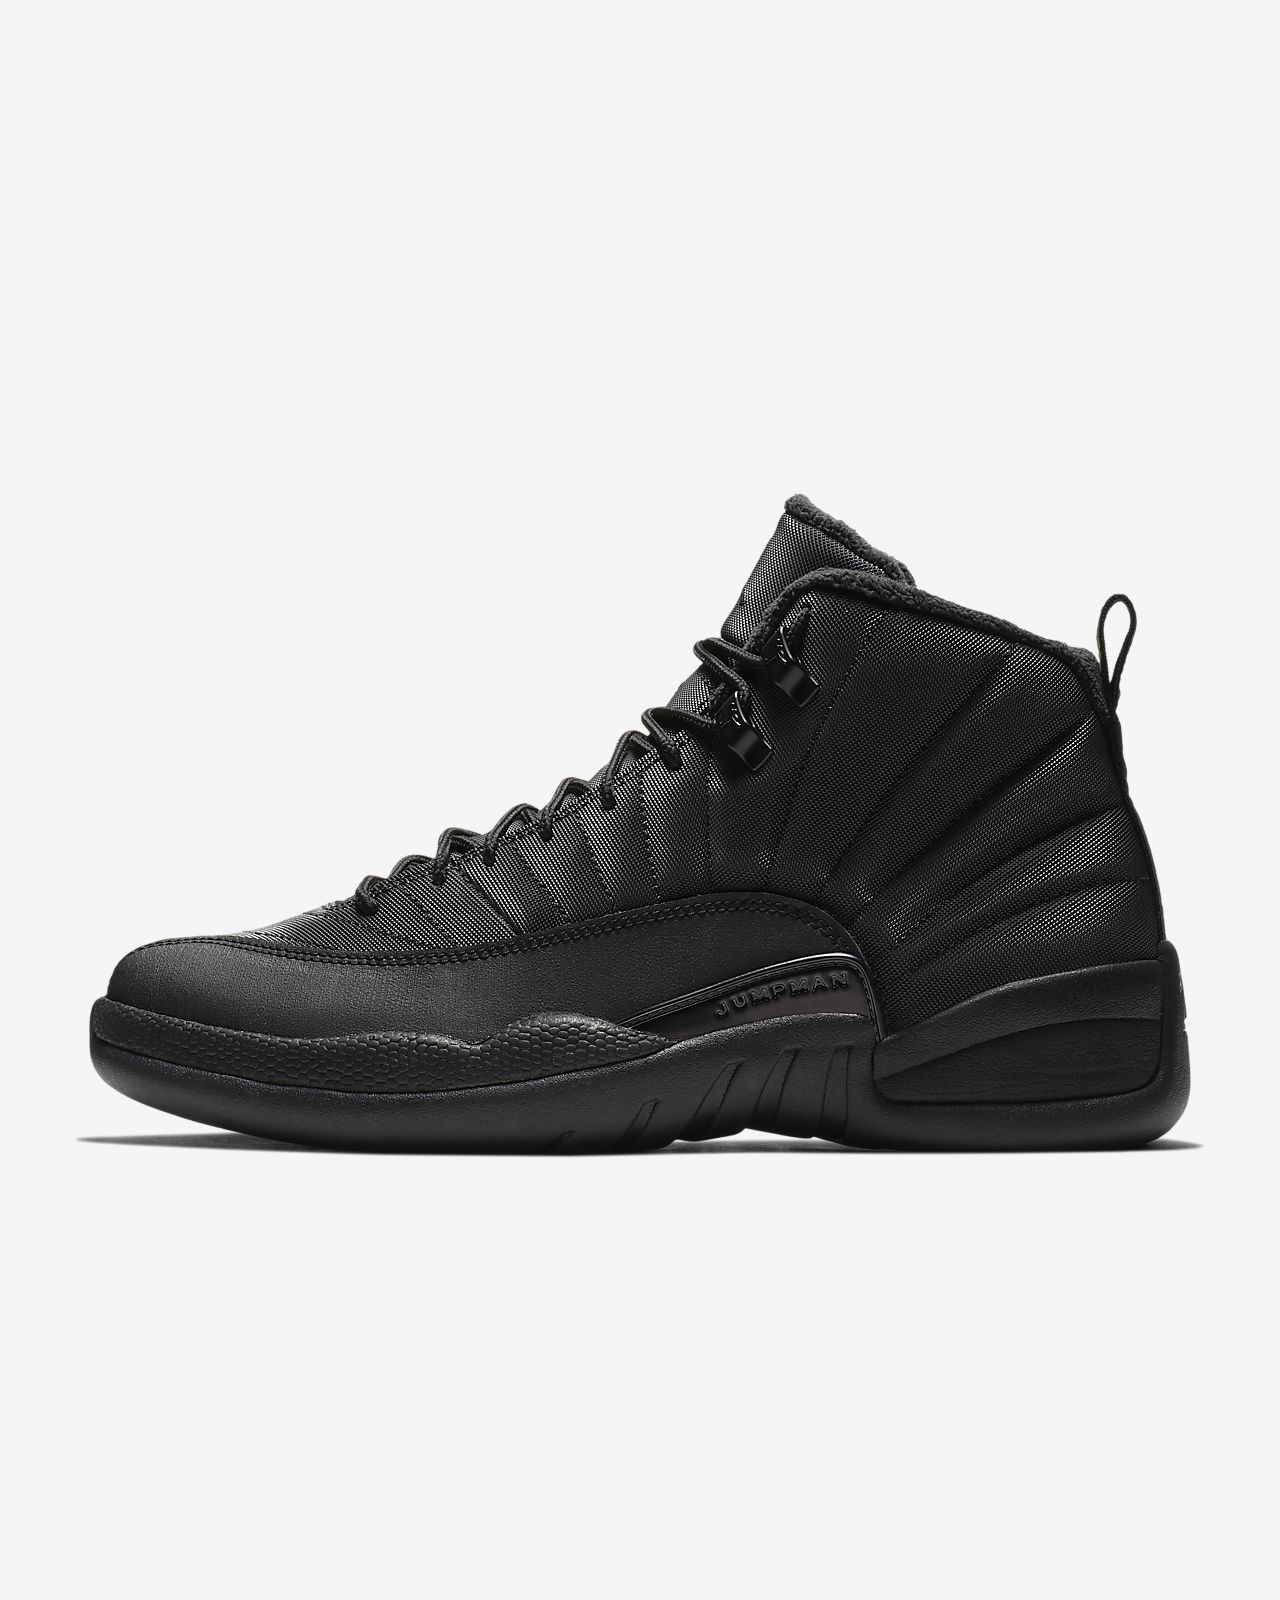 037a2a6274c2 Мужские кроссовки Air Jordan 12 Retro Winter. Nike.com RU